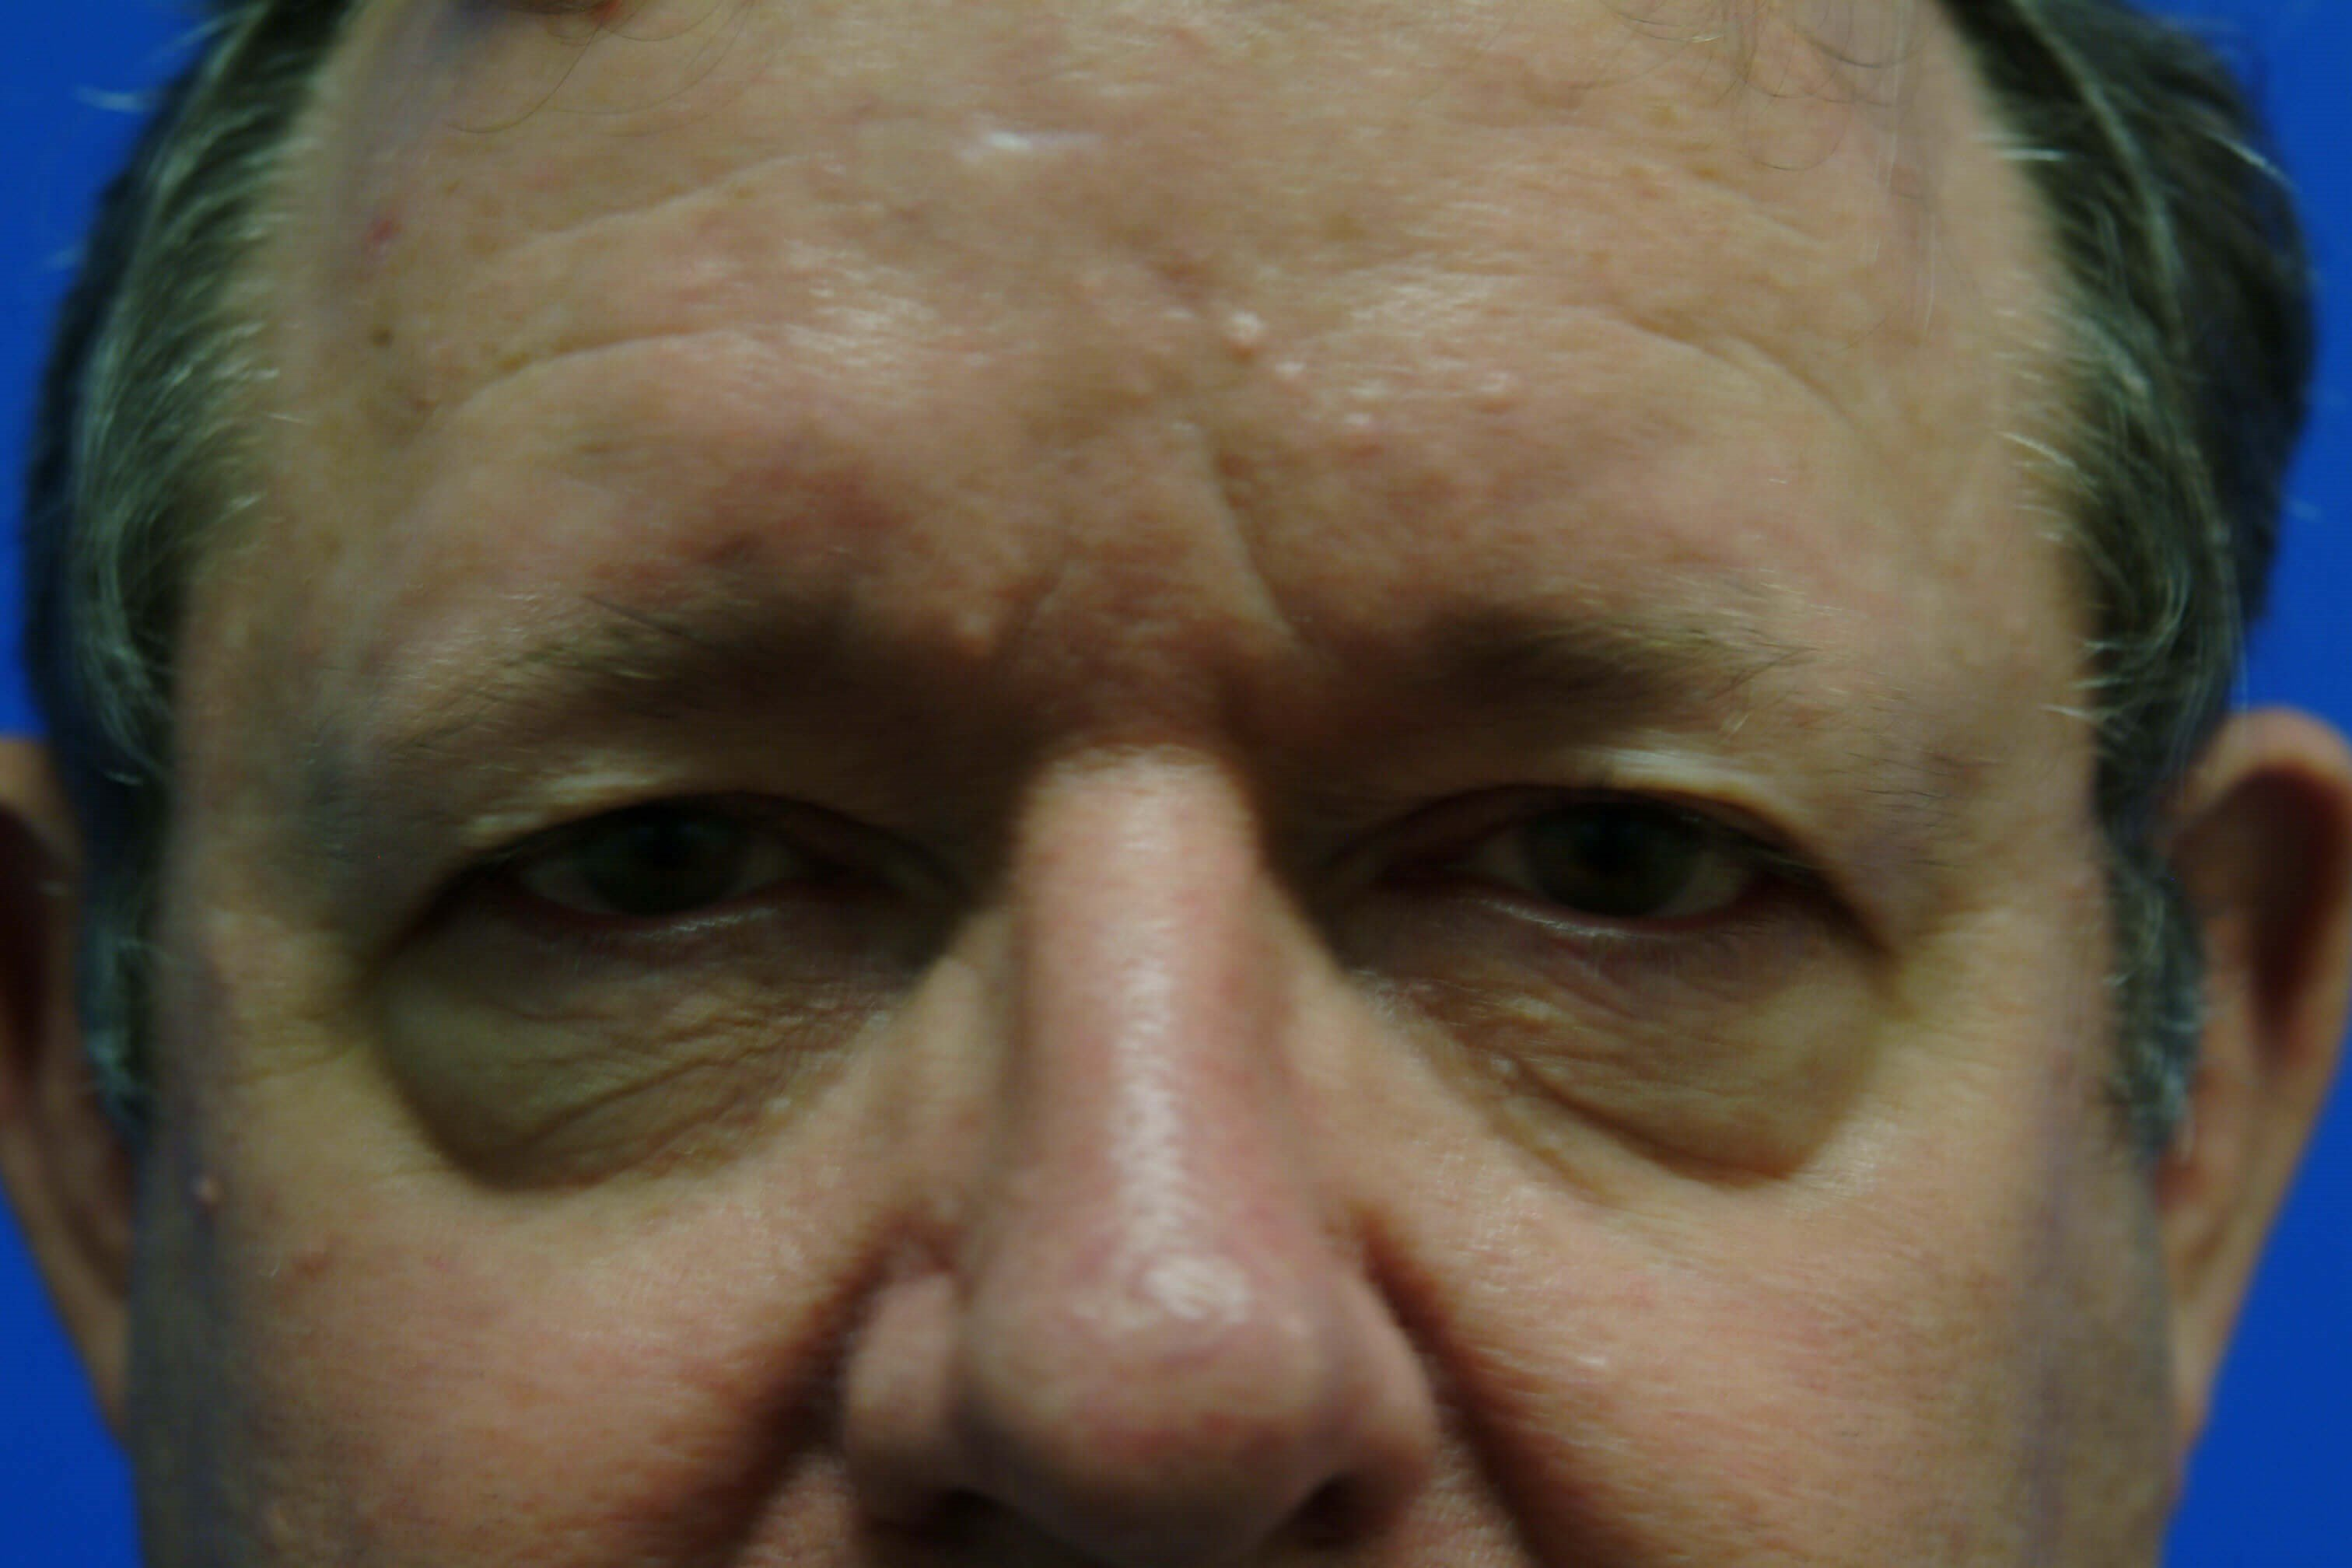 Close-up (no flash) Before: Blepharoplasty